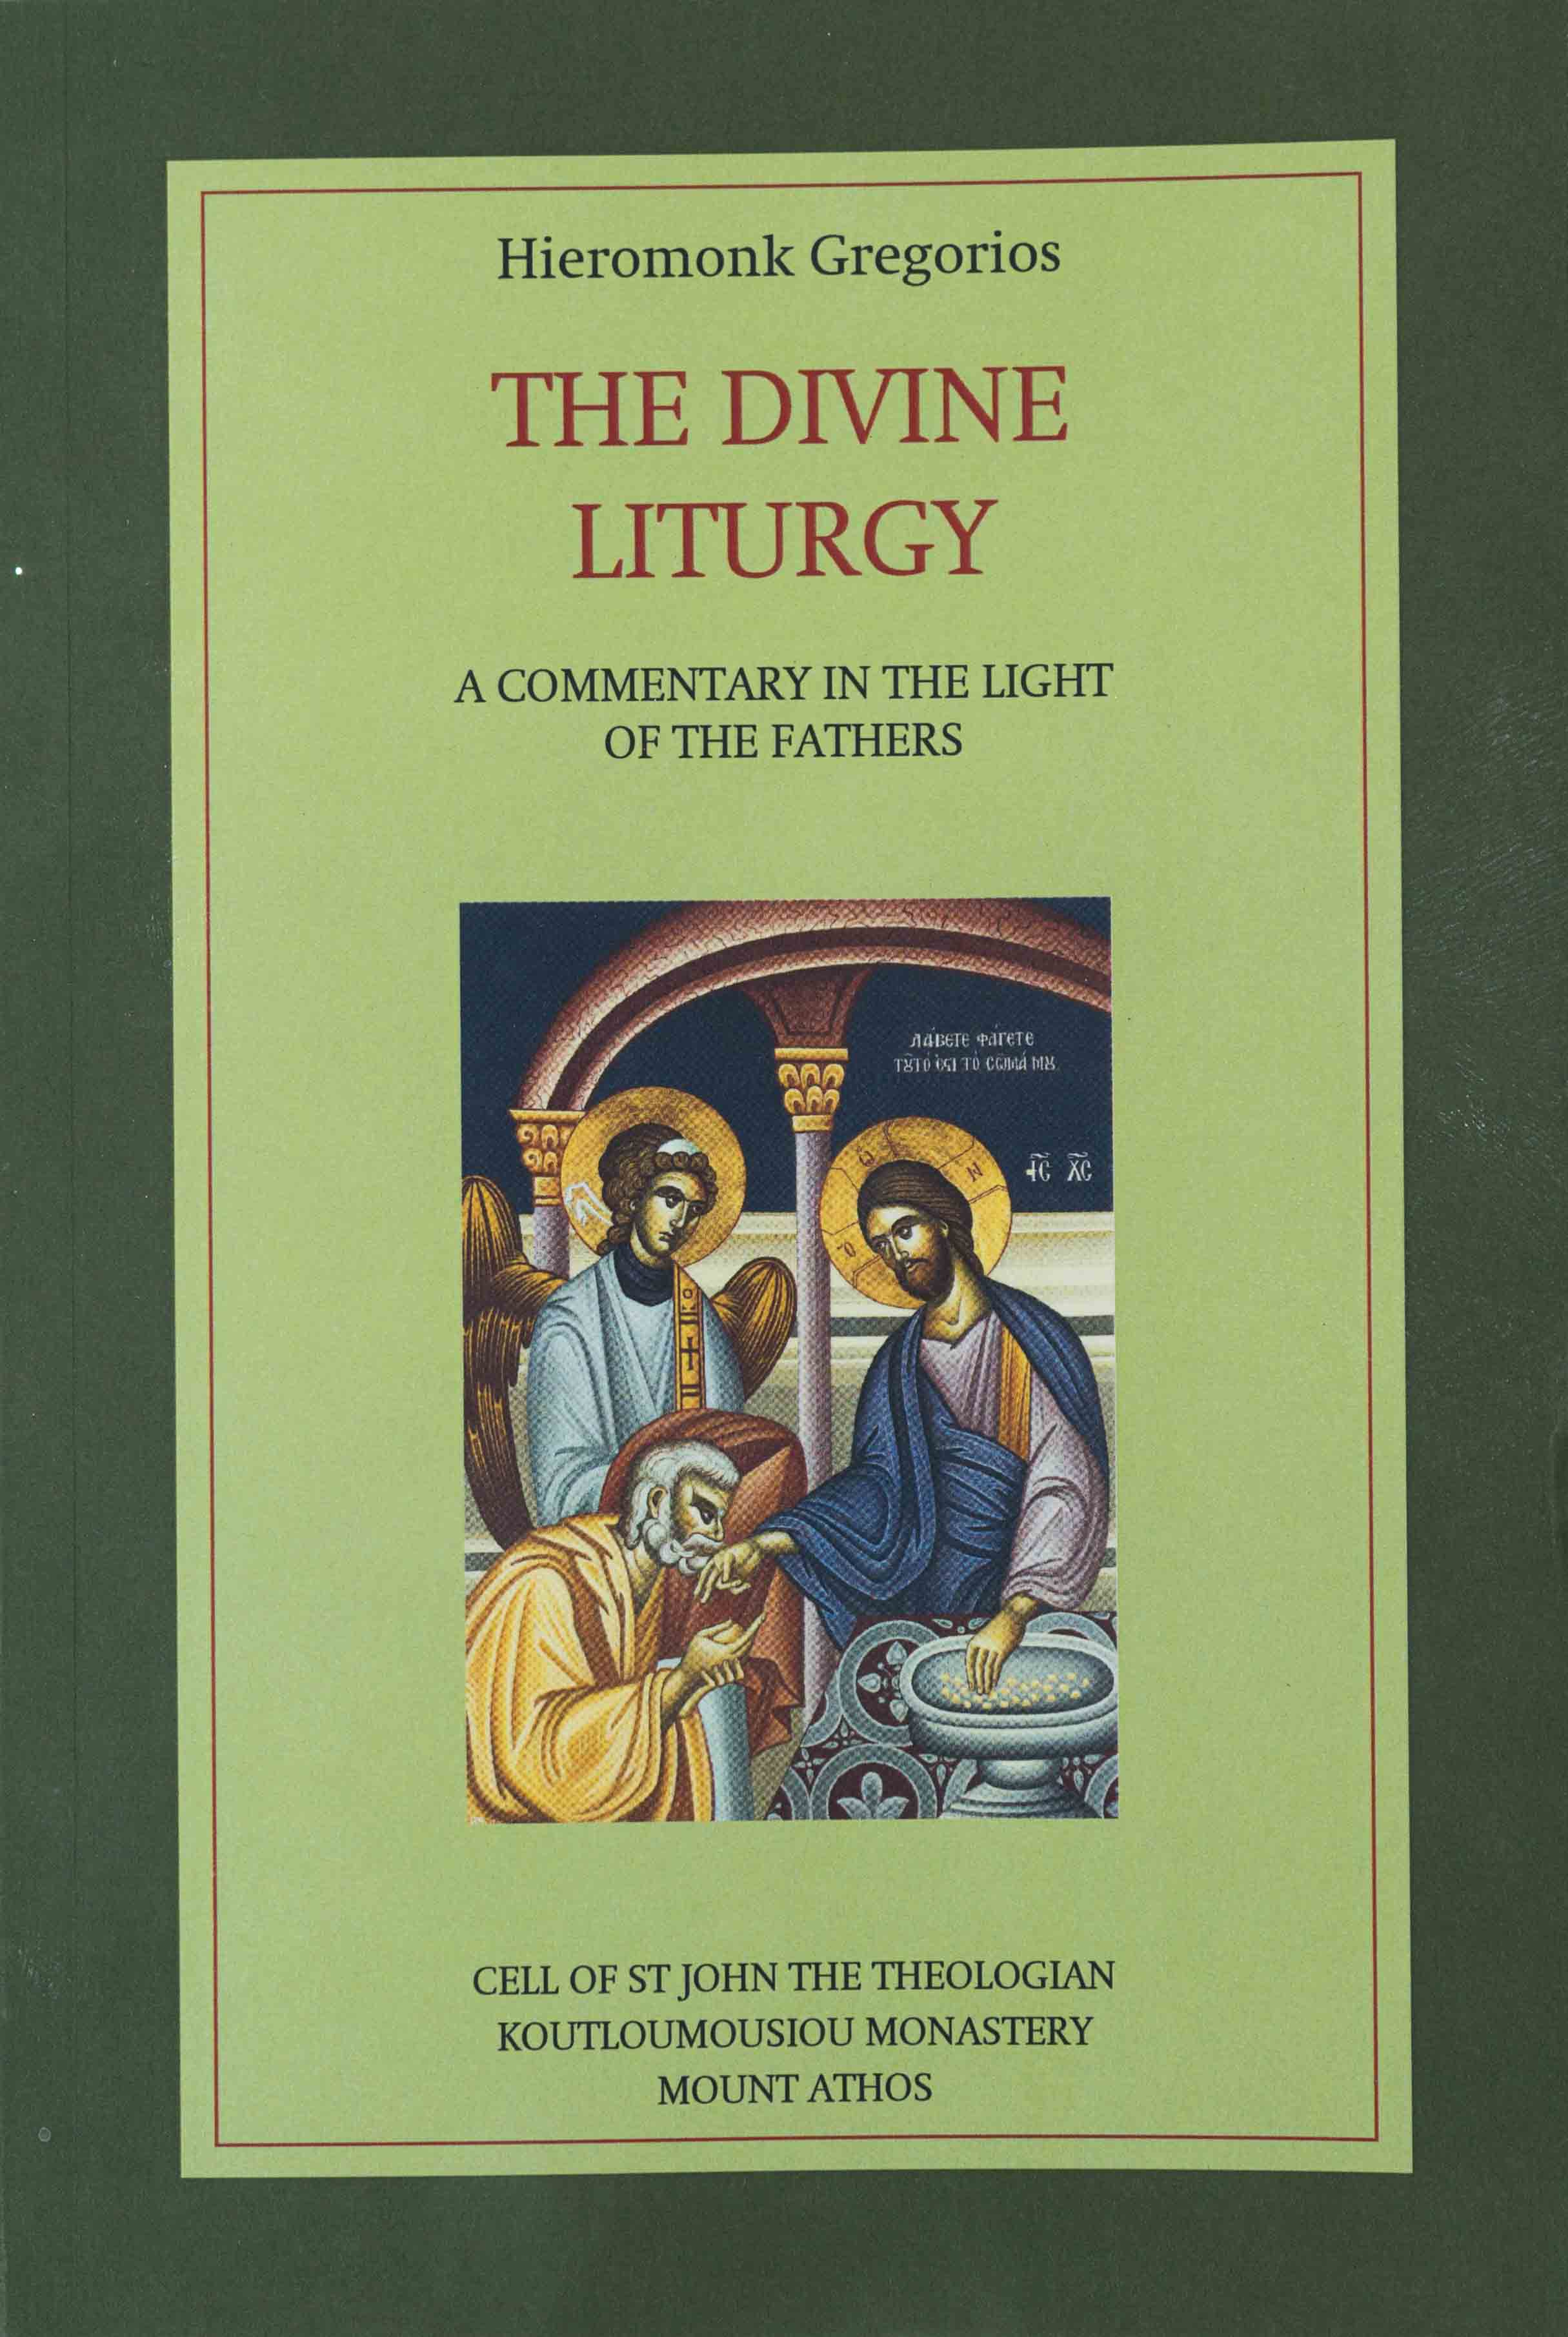 The Divine Liturgy: A Commentary in the Light of the Holy Fathers